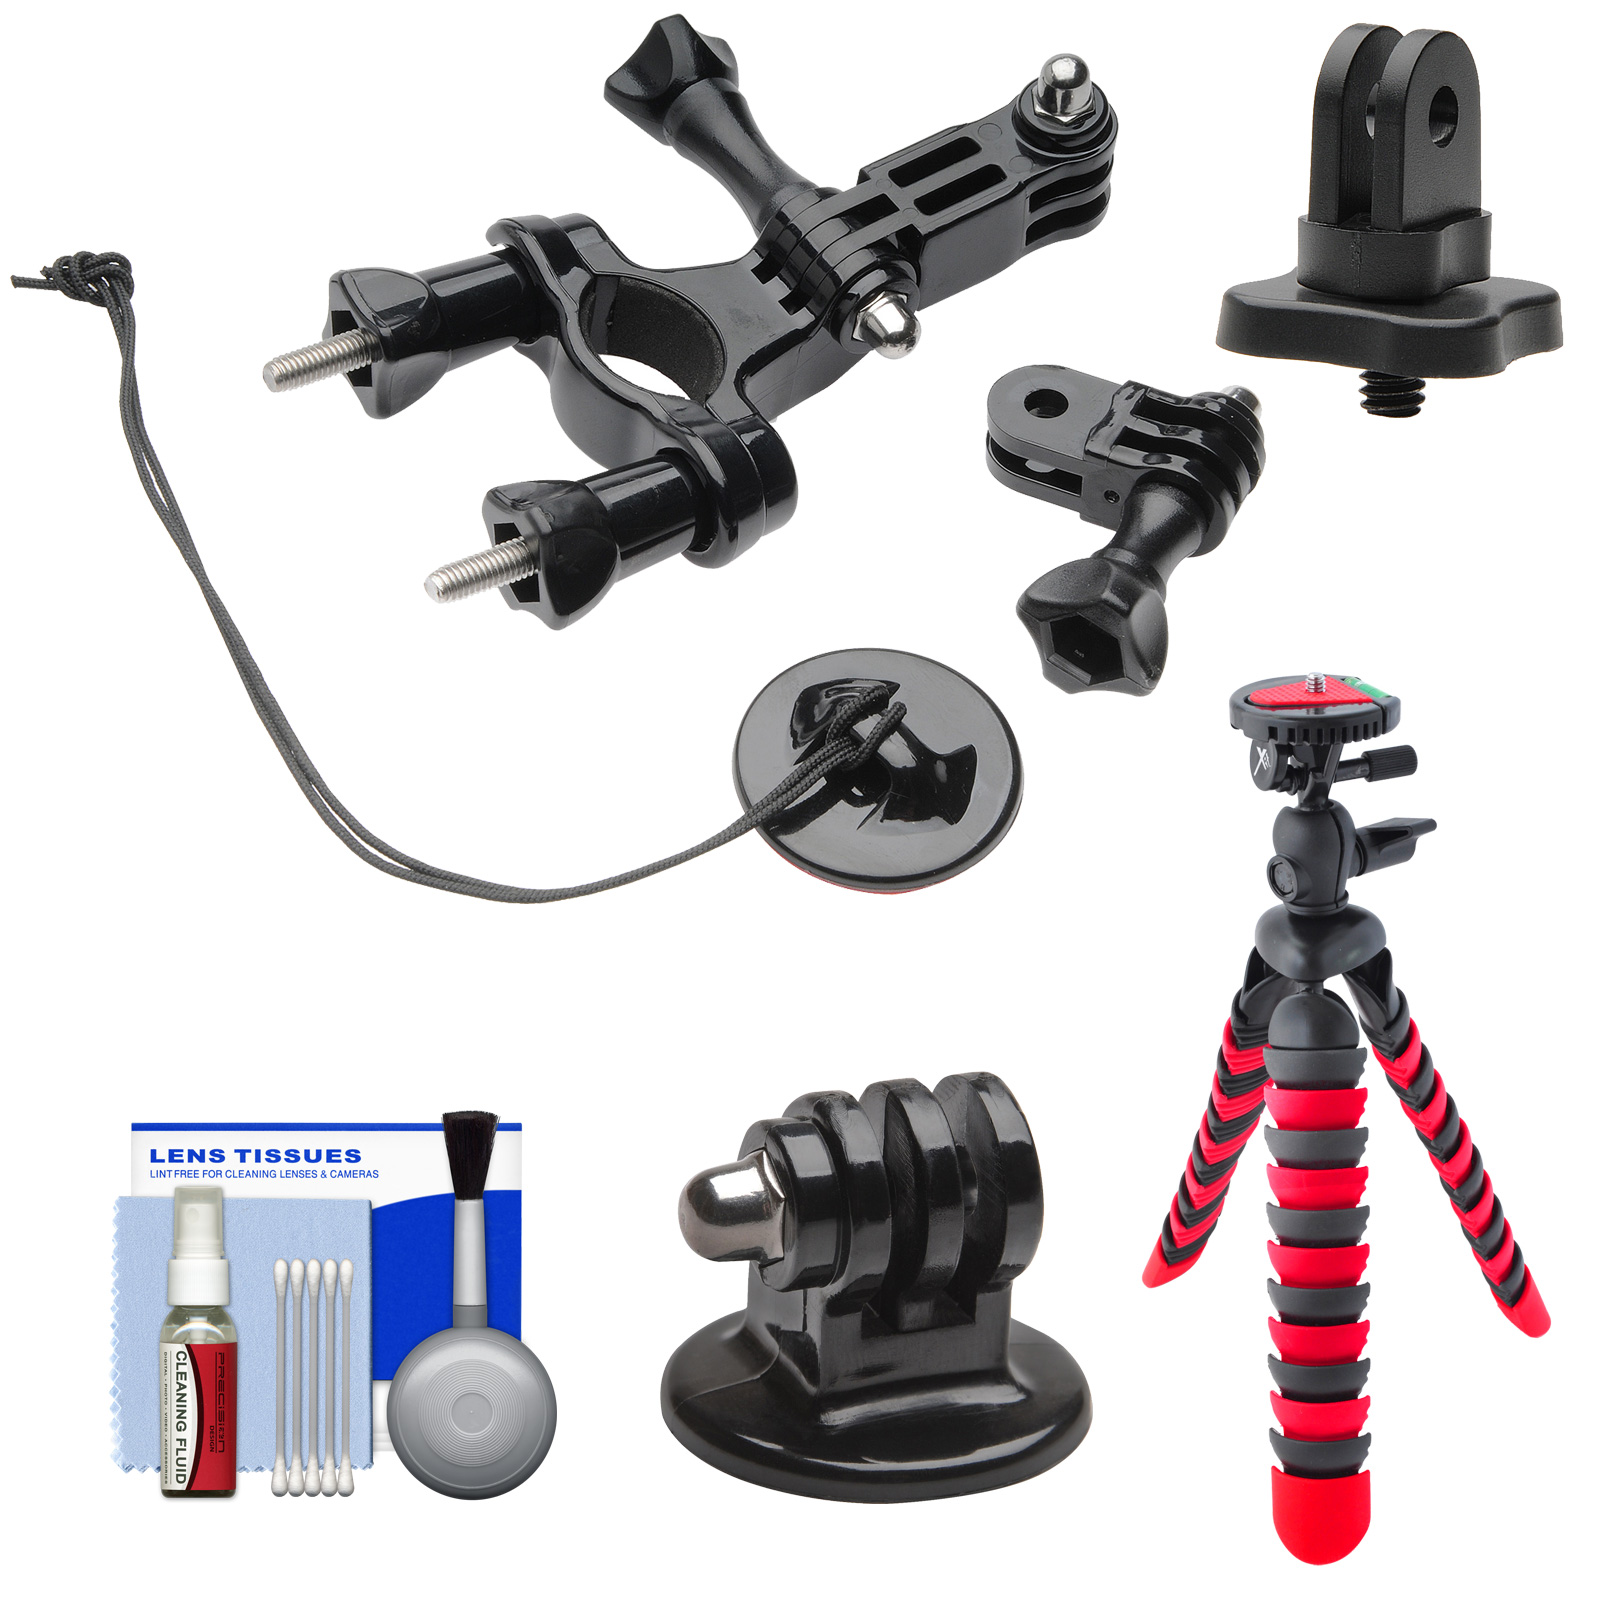 "PRO-mounts PMGP02 Bike/Handlebar Tube Mount with 1/4"" Thread Adapter   Flex Tripod Kit for GoPro HERO, Sony Action Cam, Drift, Veho Muvi, and most Cameras"